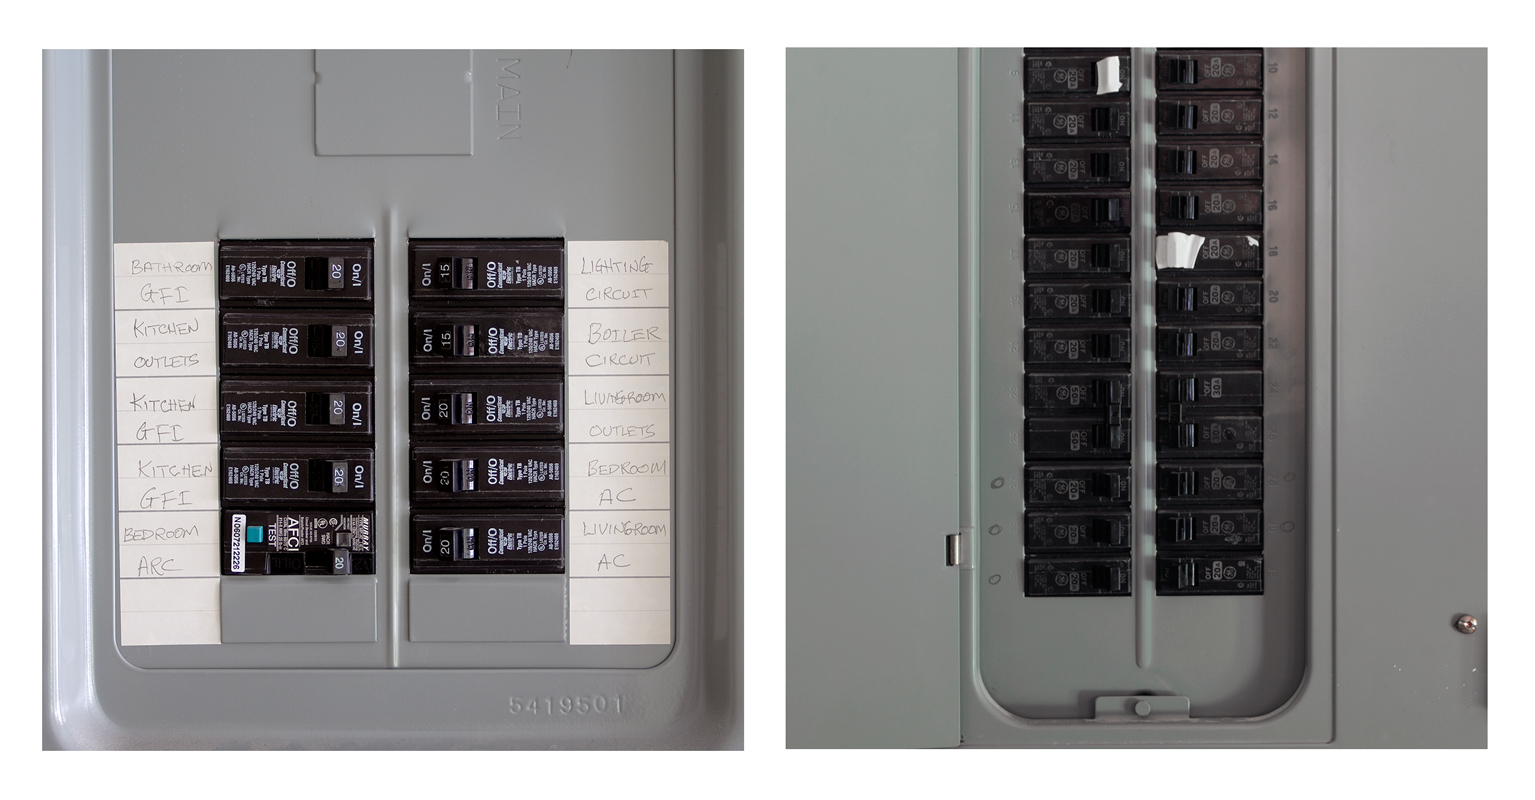 3 Phase 208v Circuit Breakers Not Lossing Wiring Diagram Breaker Panel And Schematic For Get Free Image About